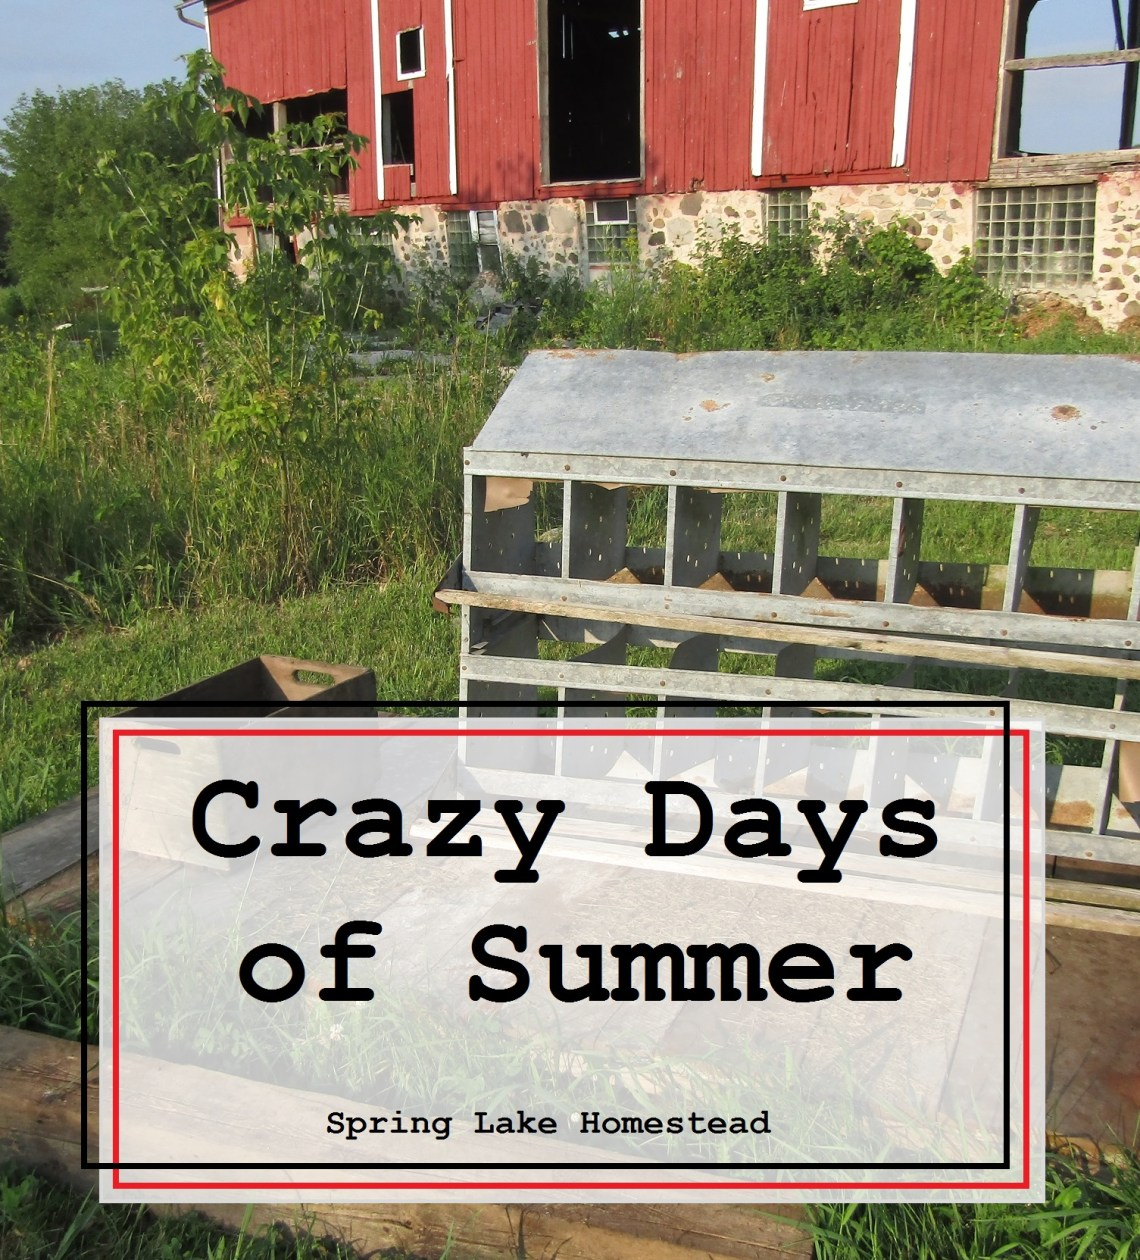 Crazy Days of Summer